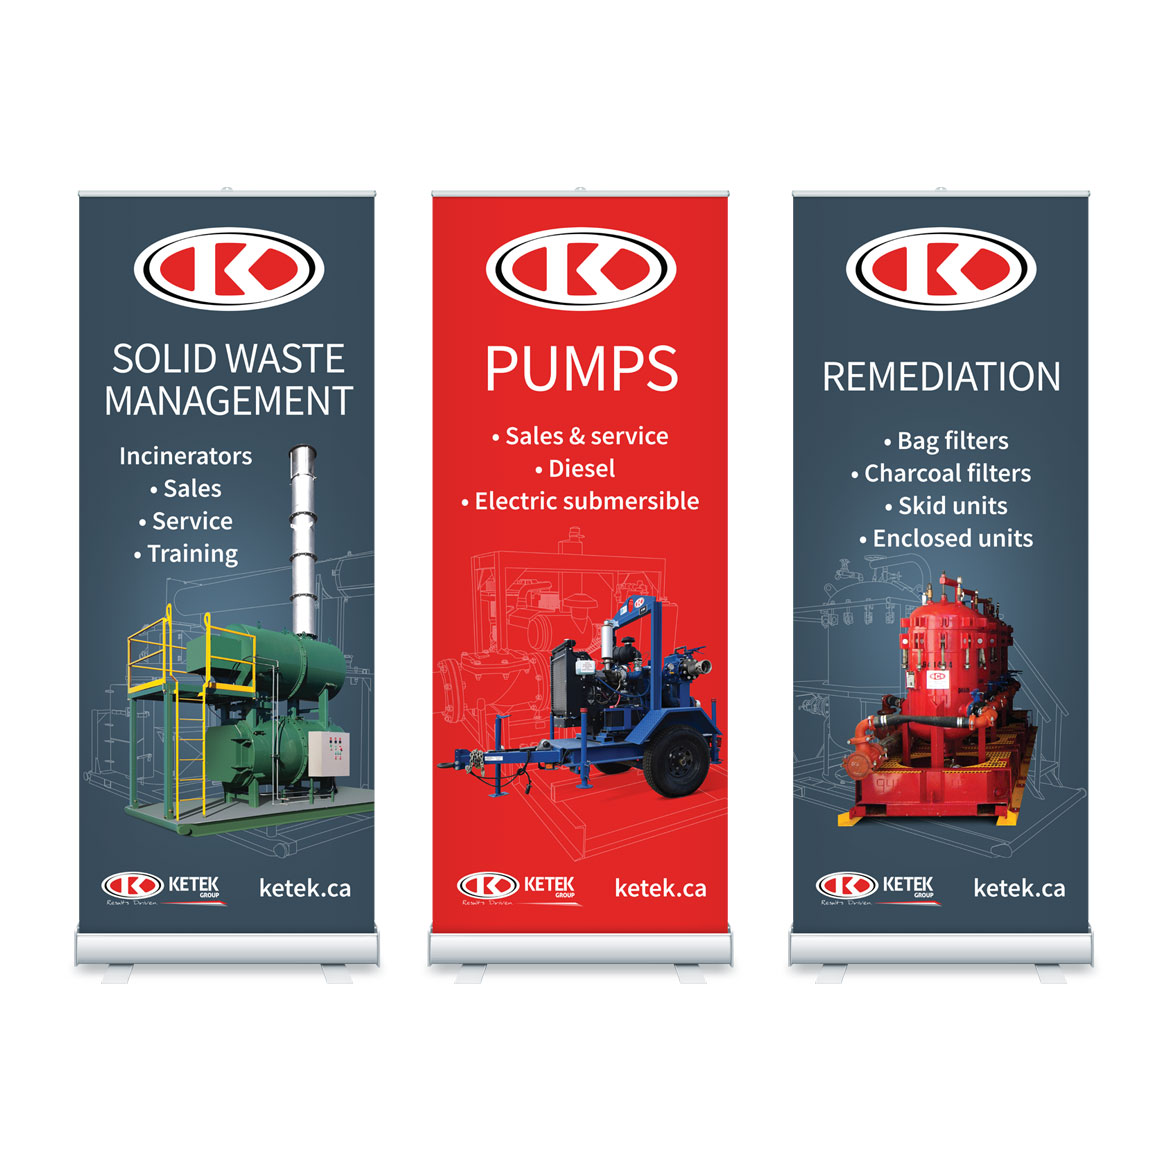 Trade Show Materials Design - Edmonton - Ketek Group